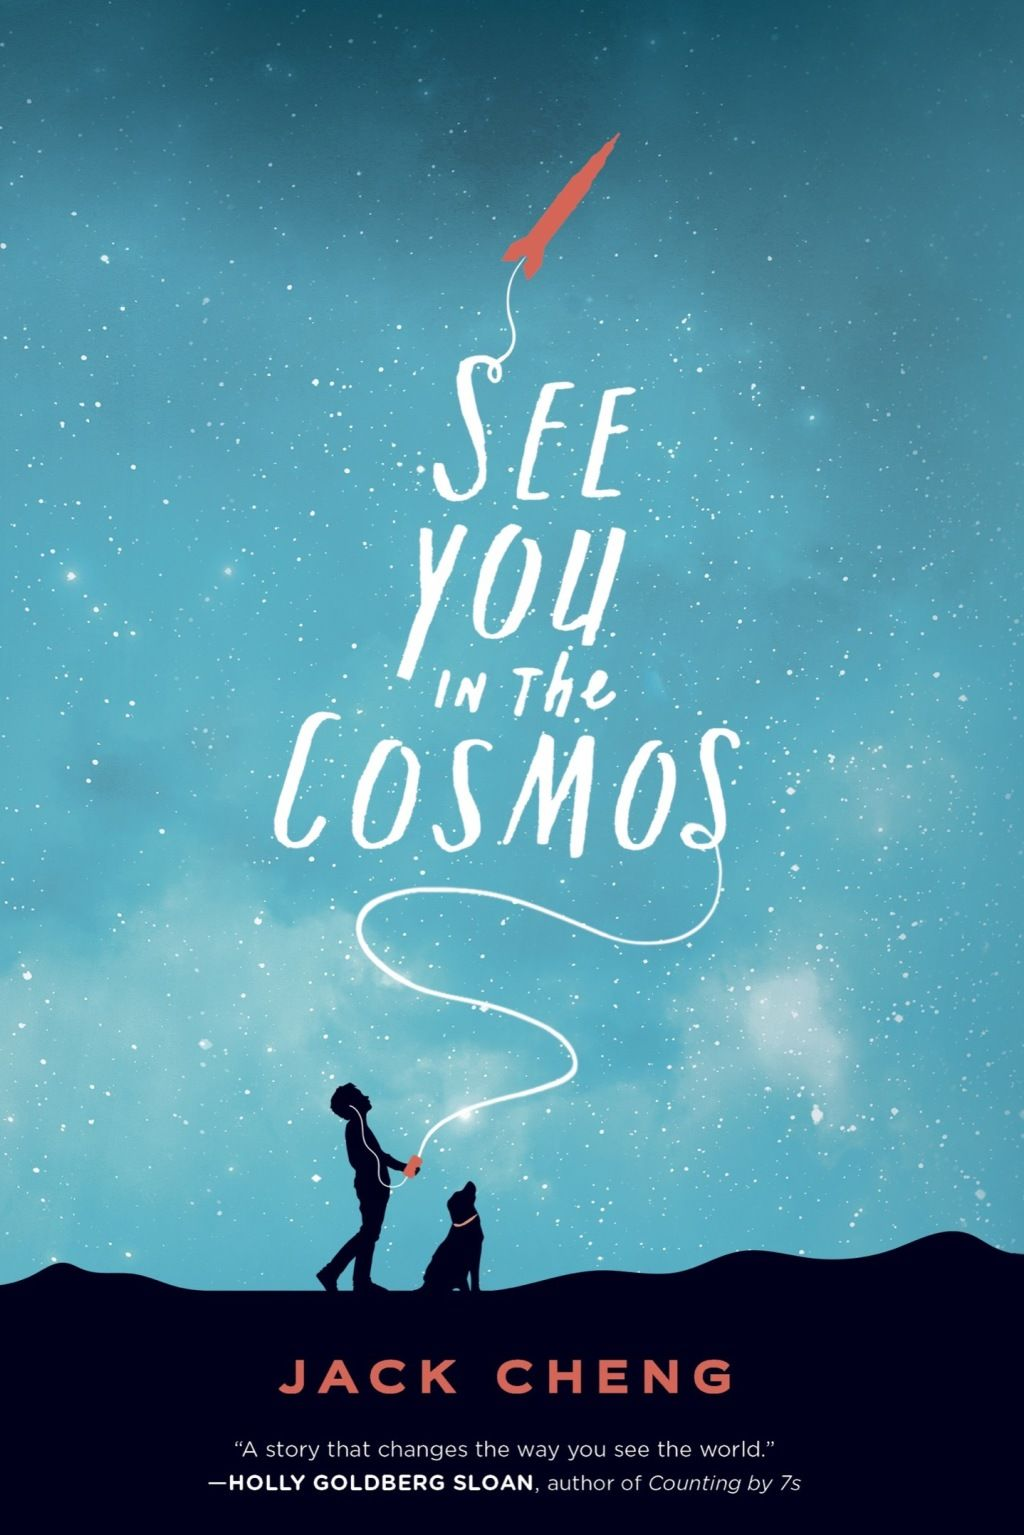 See You in the Cosmos (eBook) is part of Chapter books - By Jack Cheng PRINT ISBN 9780399186370 ETEXT ISBN 9780399186394 Edition 0